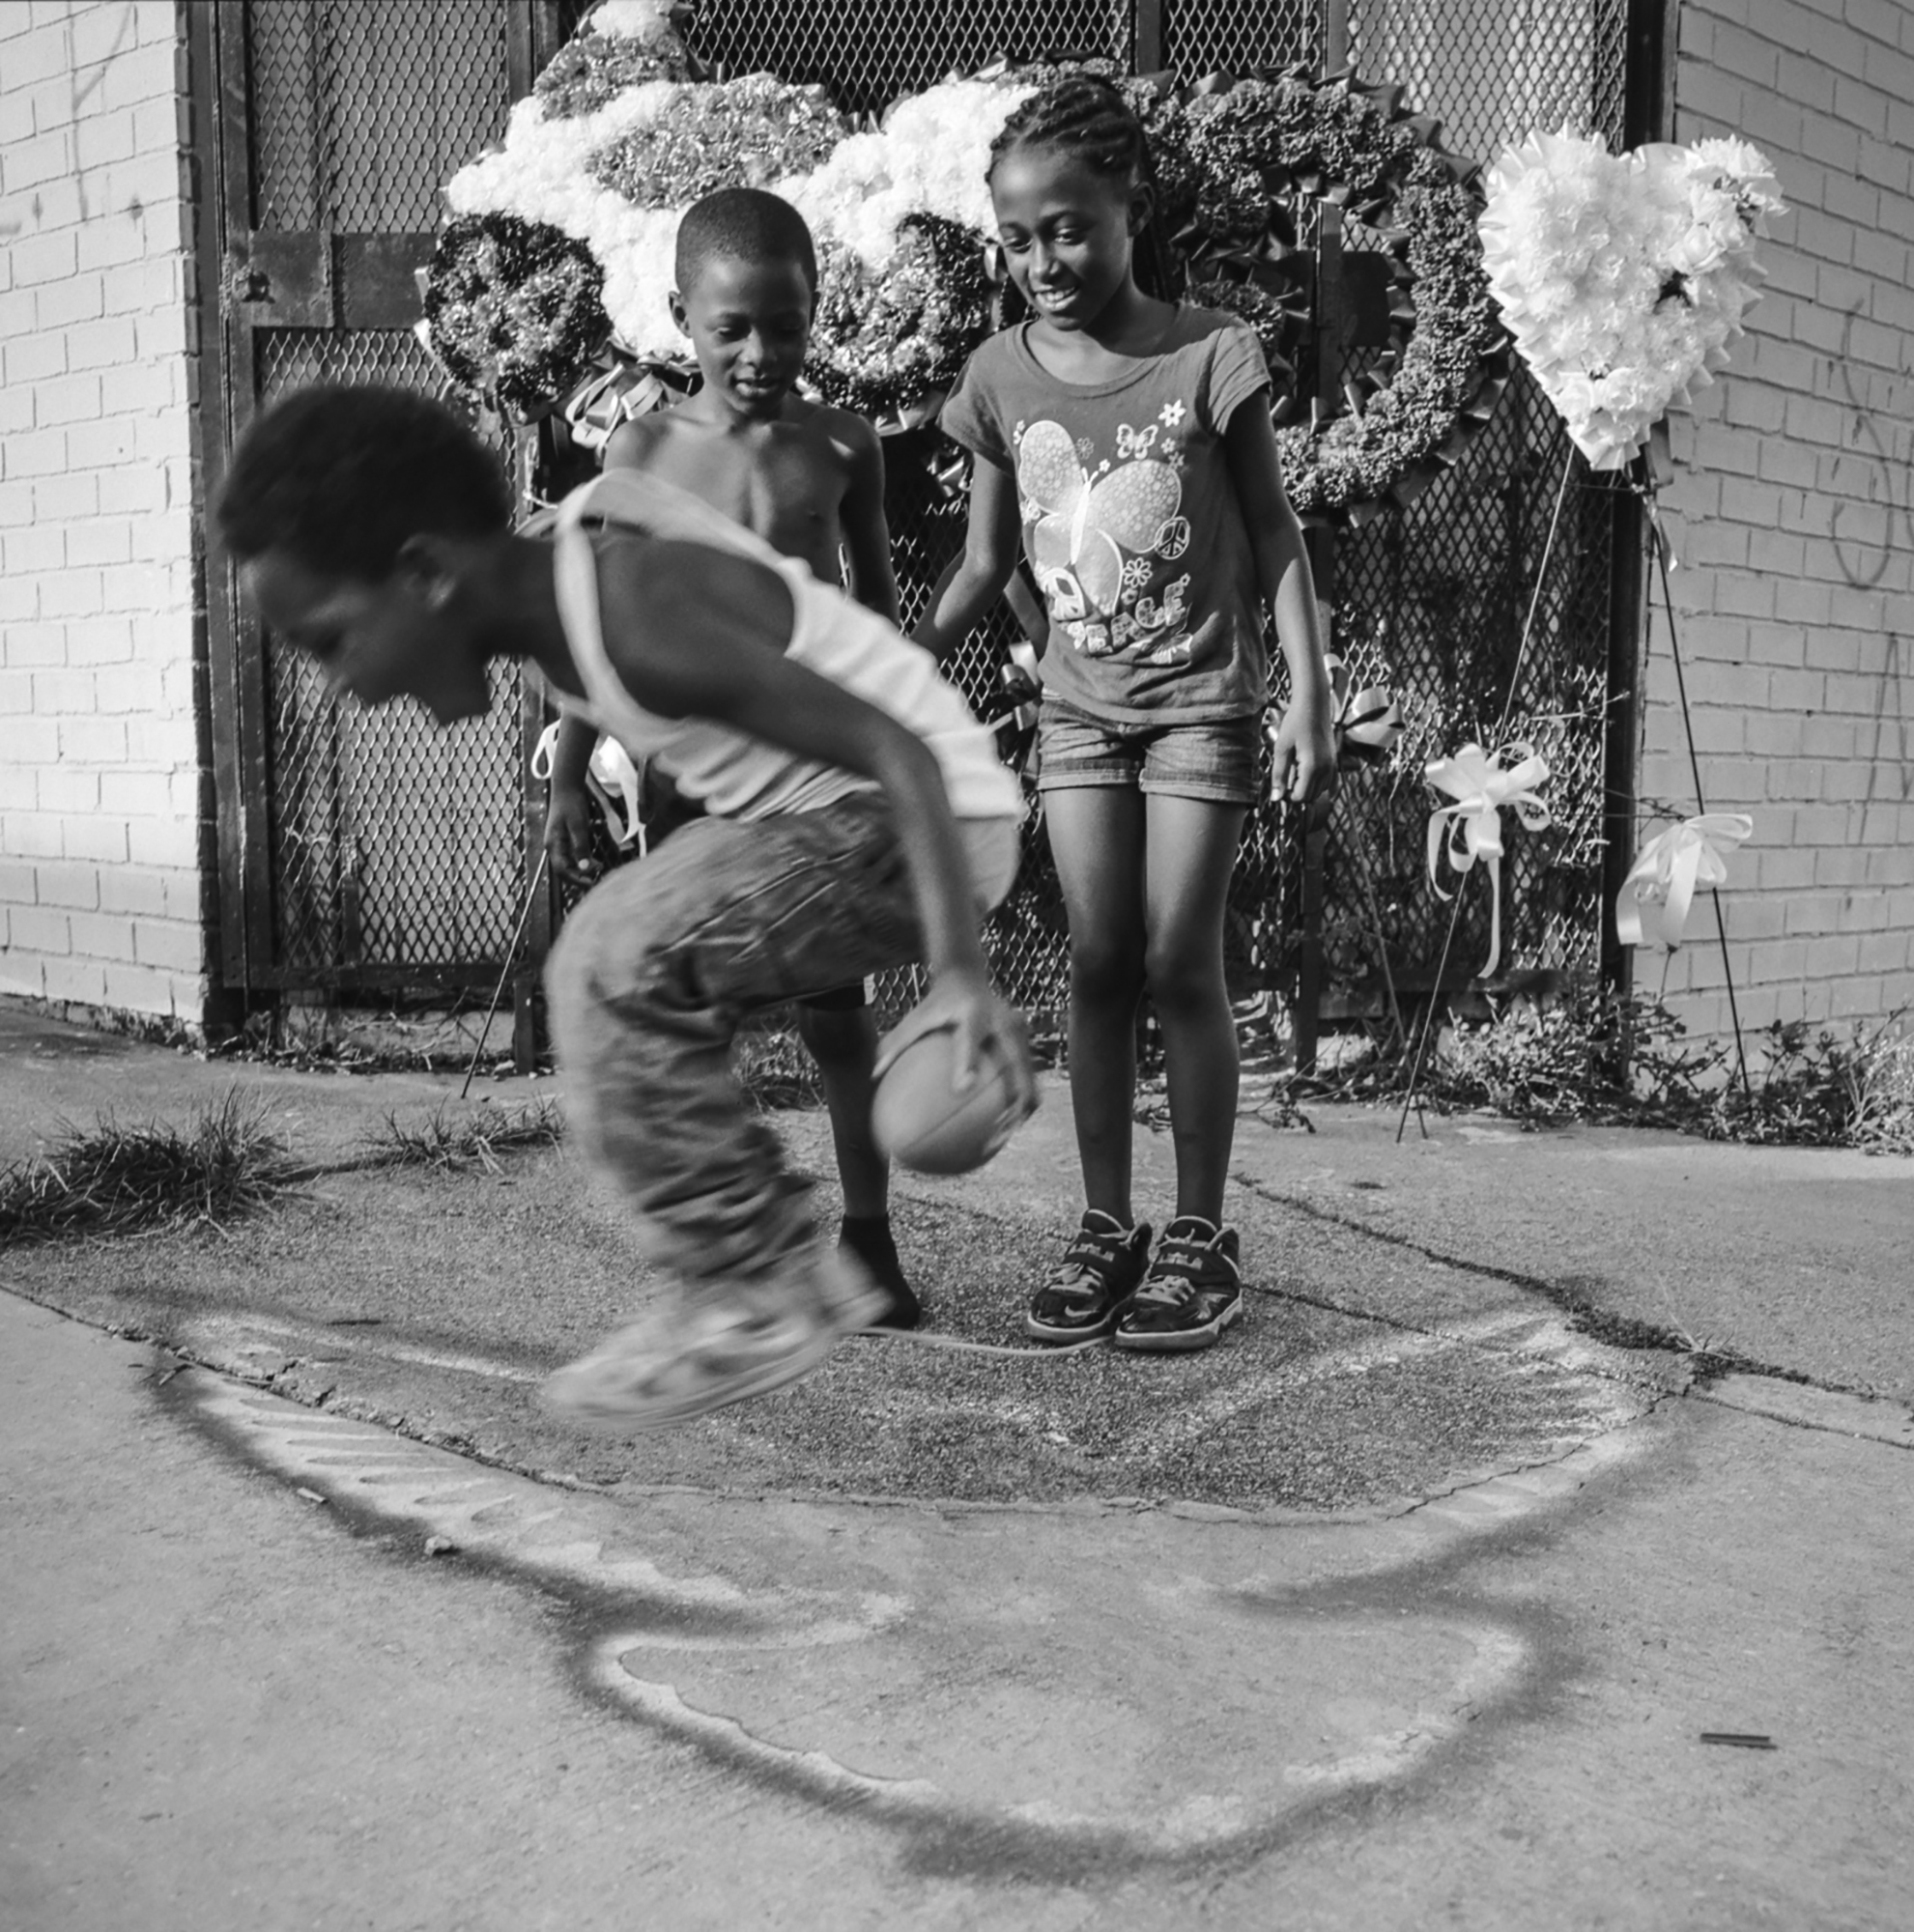 Kids playing aside a makeshift shrine New Orleans, 2014